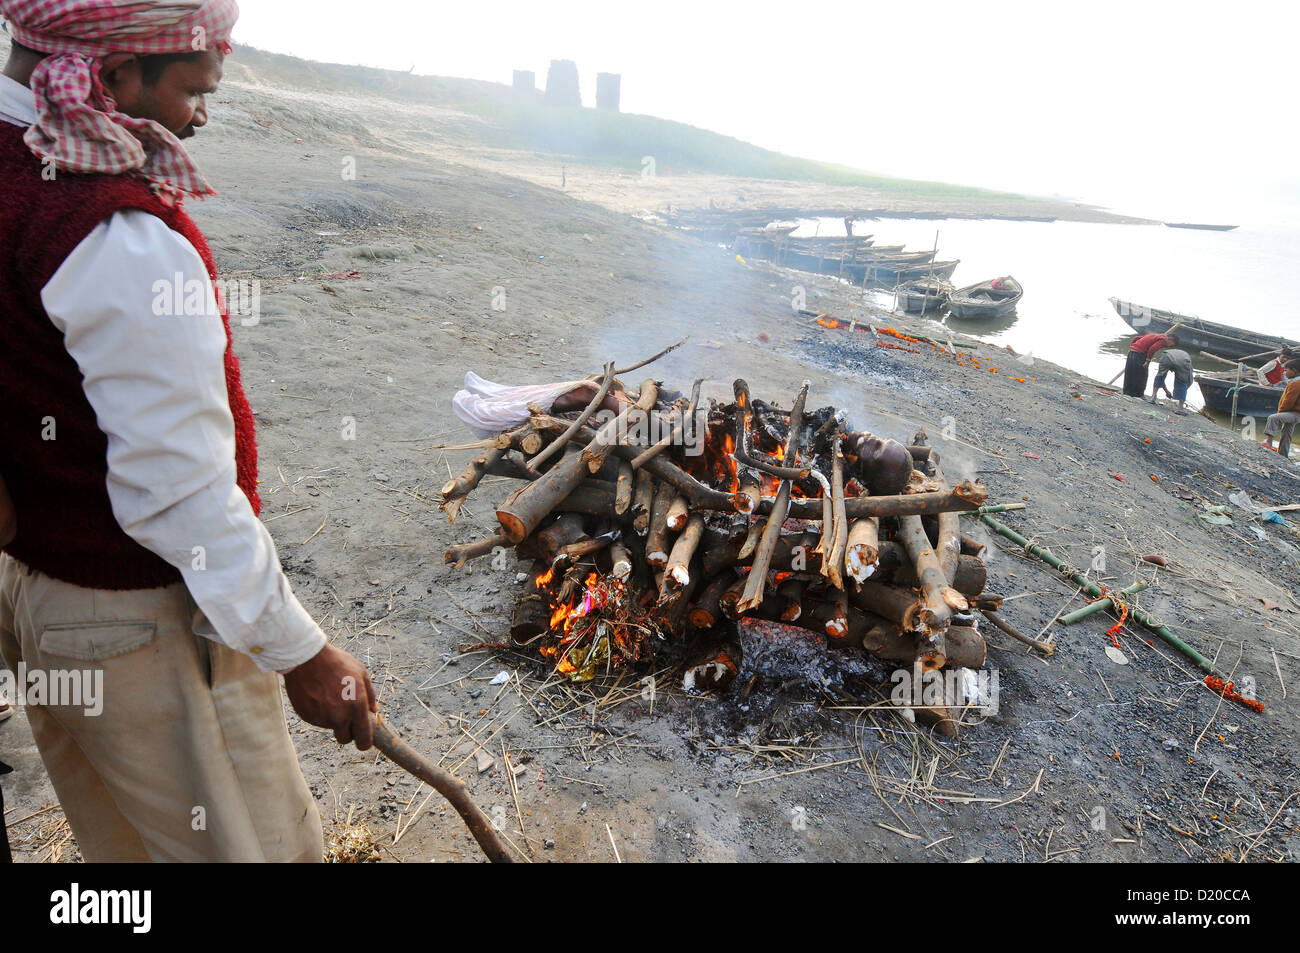 A cremation on the banks of the Ganges in India. - Stock Image